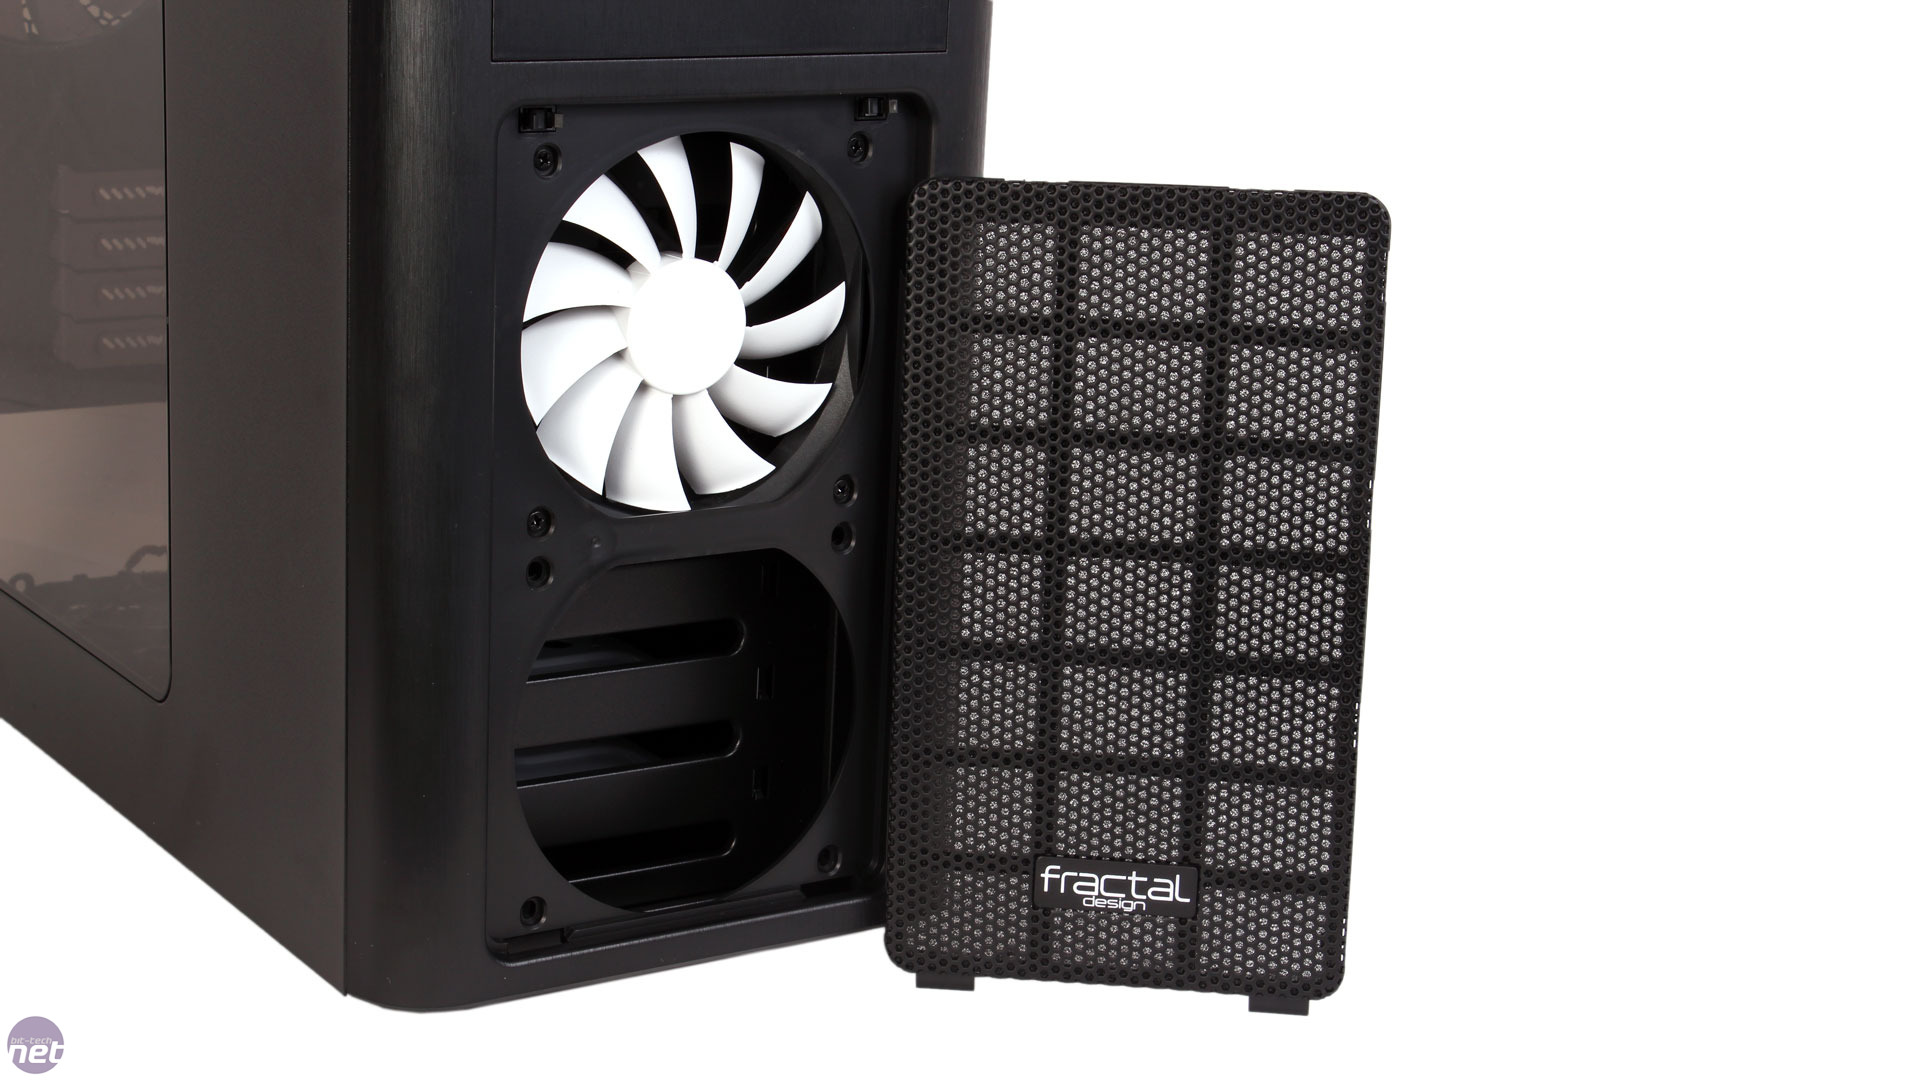 Fractal Design Arc Mini R2 Review Bit Tech Net